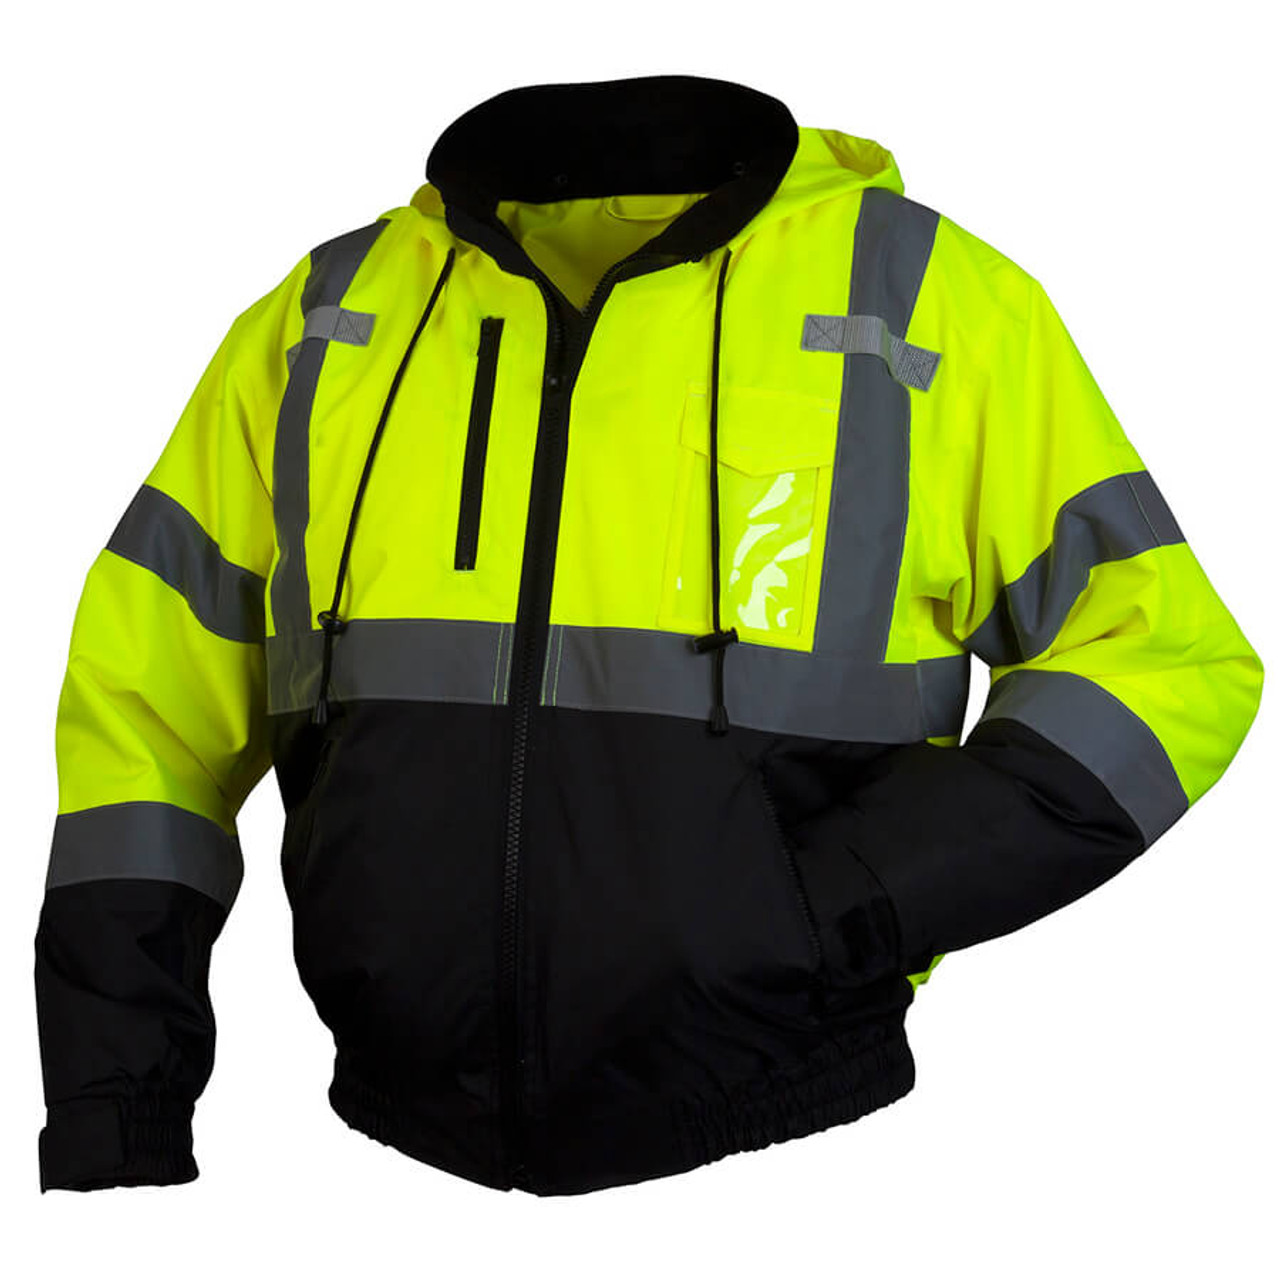 0ce540ec1ad Pyramex Lumen-X RJ31 Class 3 Safety Jacket - Free Shipping